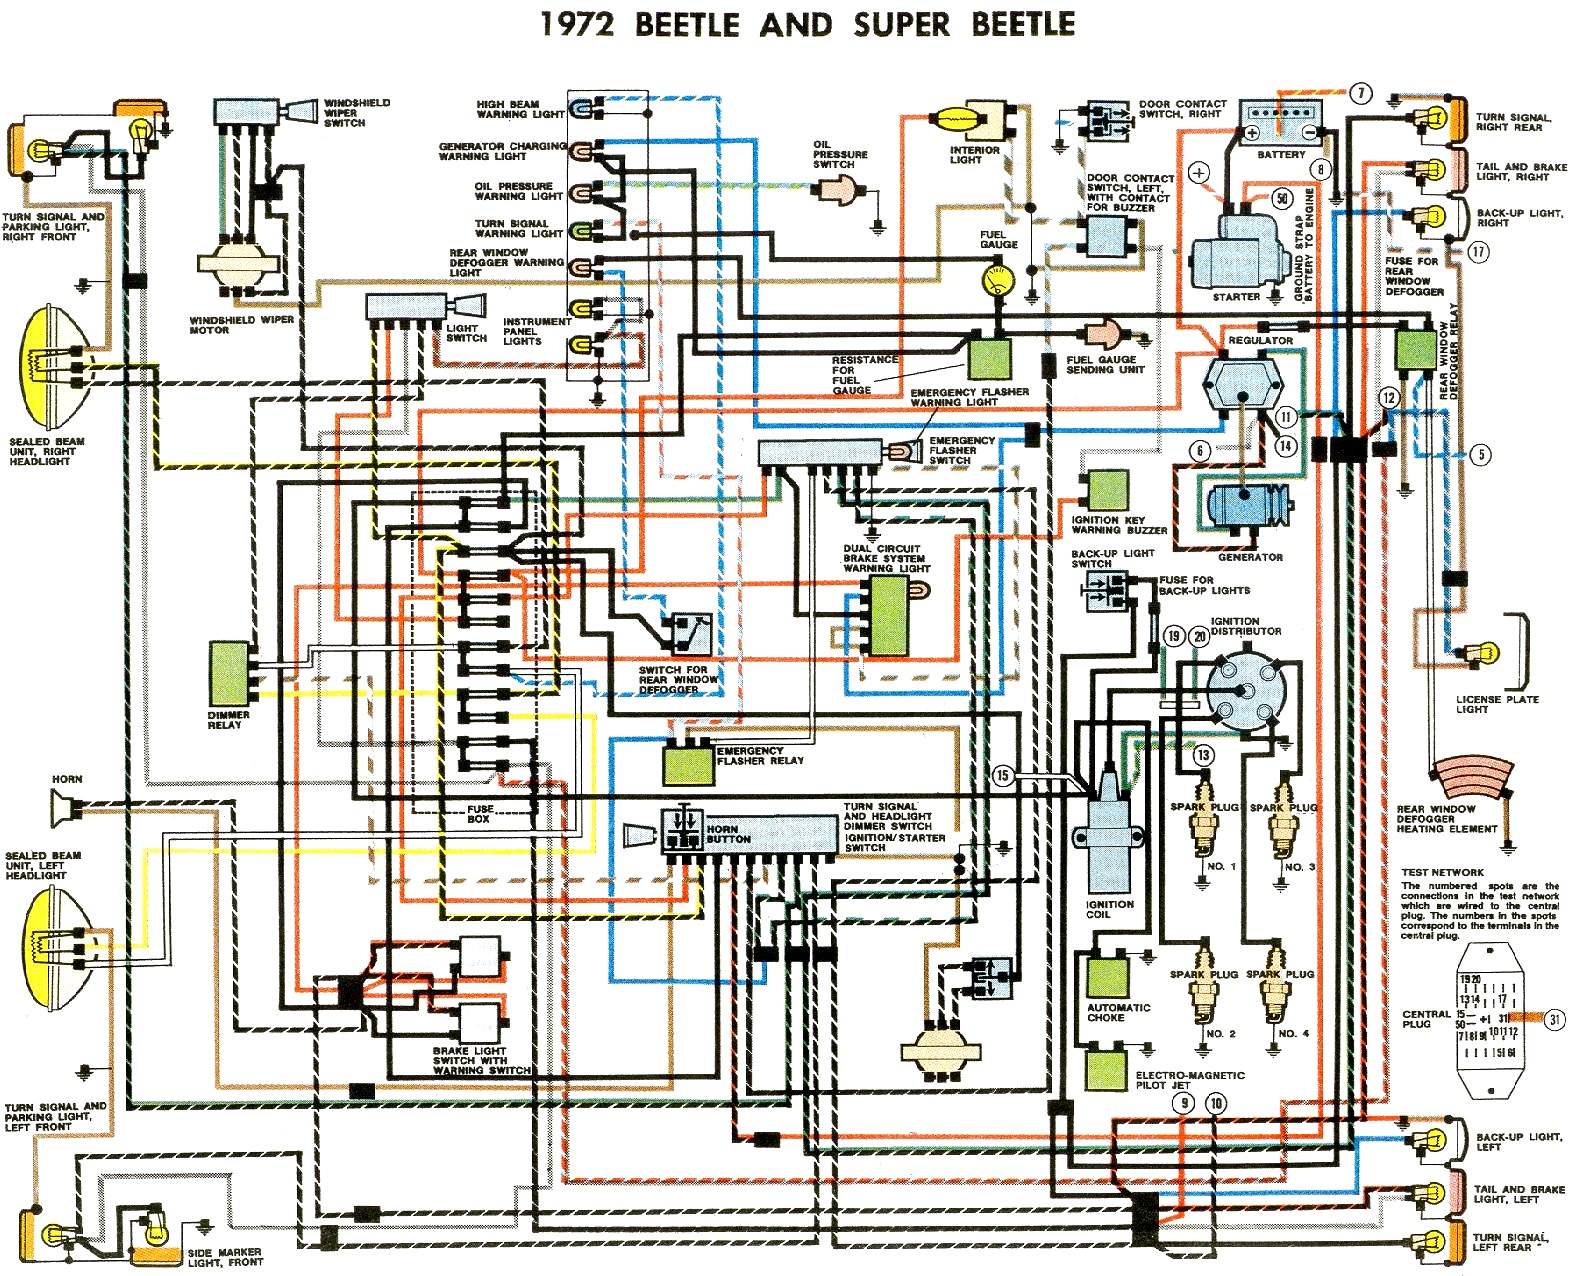 bug_72 vw golf 1 wiring diagram vw golf 1 wiring diagram \u2022 wiring vw ignition wiring diagram at n-0.co